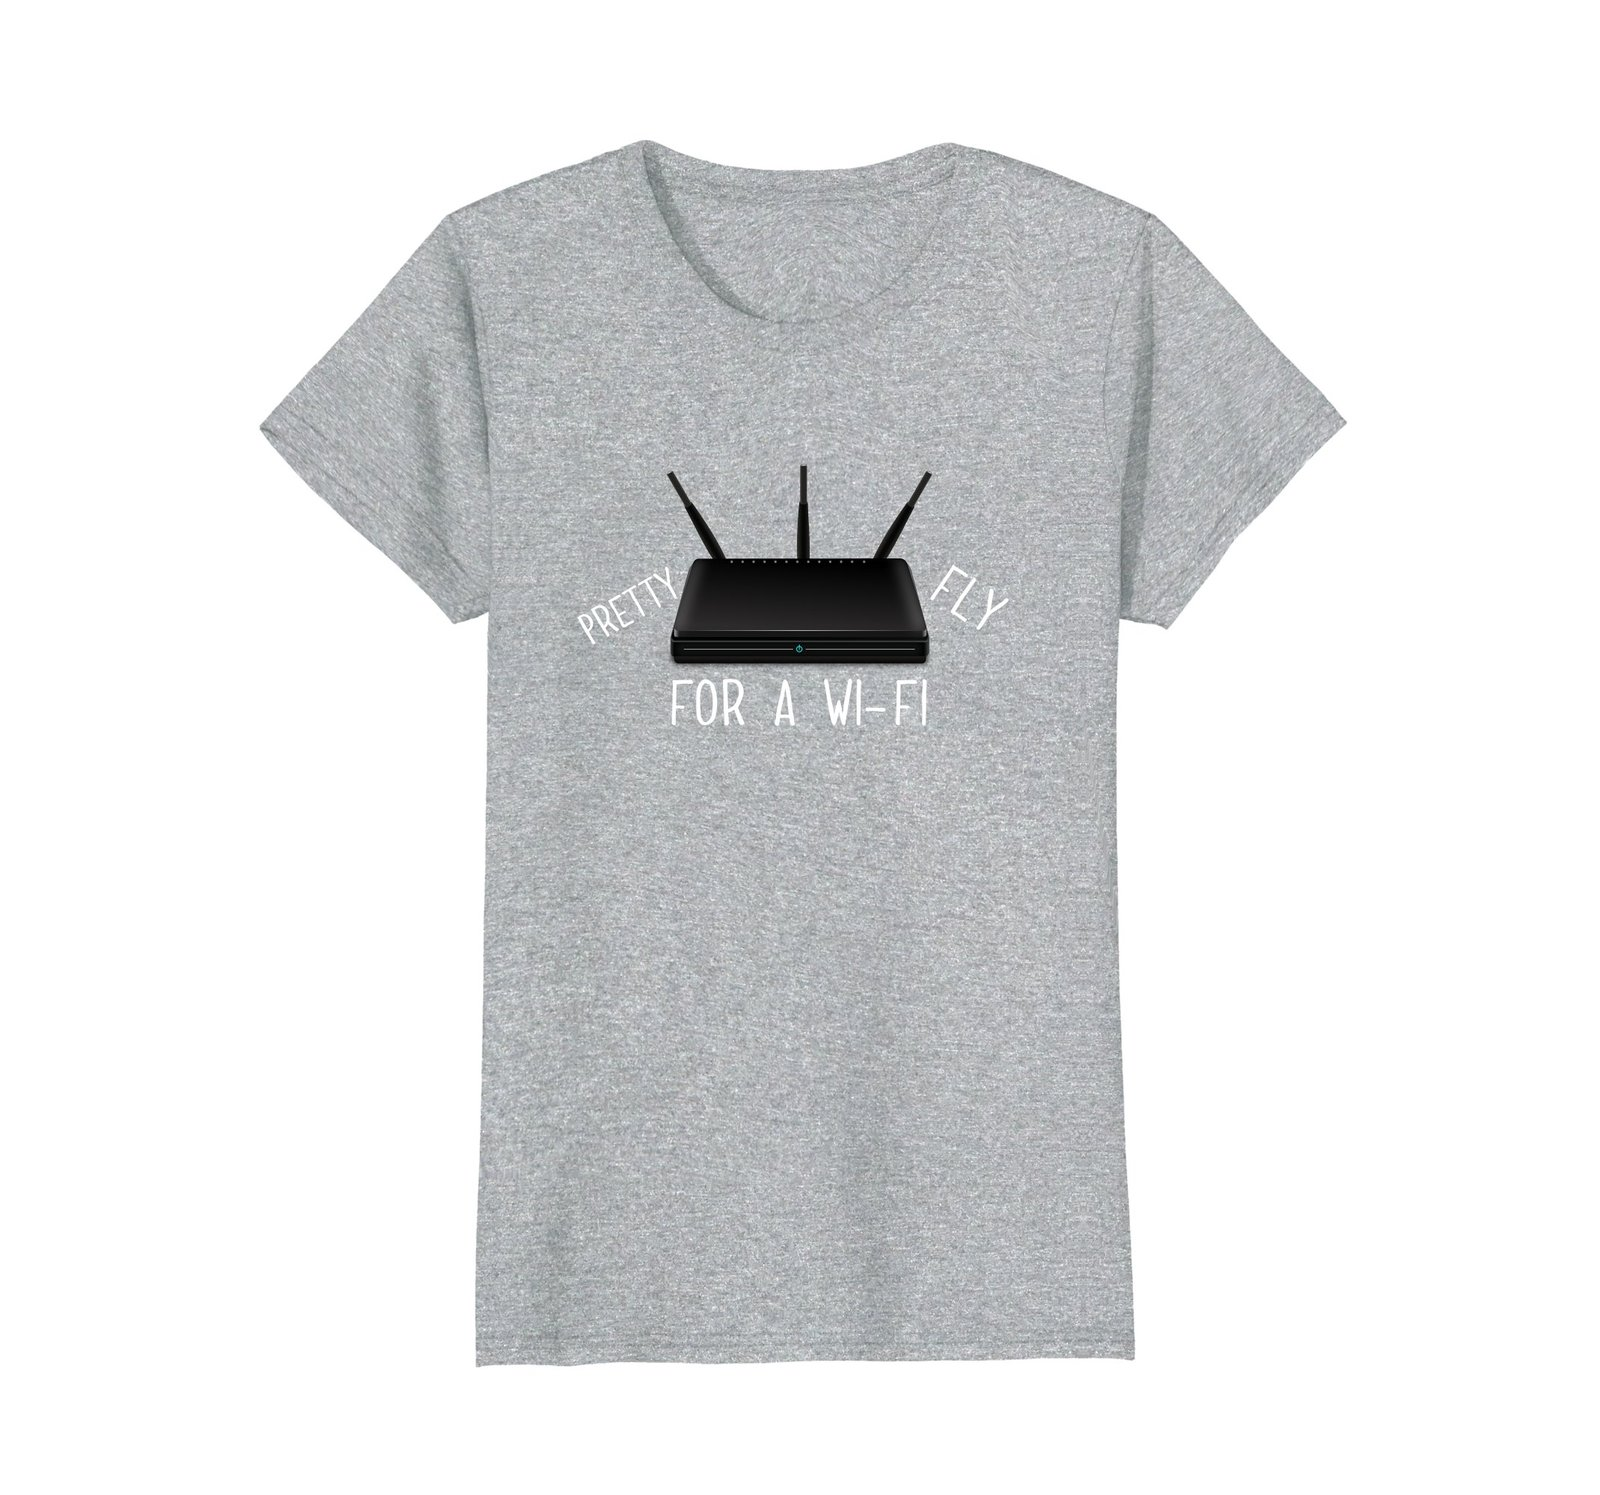 Primary image for Funny Shirts - Pretty Fly for a WiFi Wowen